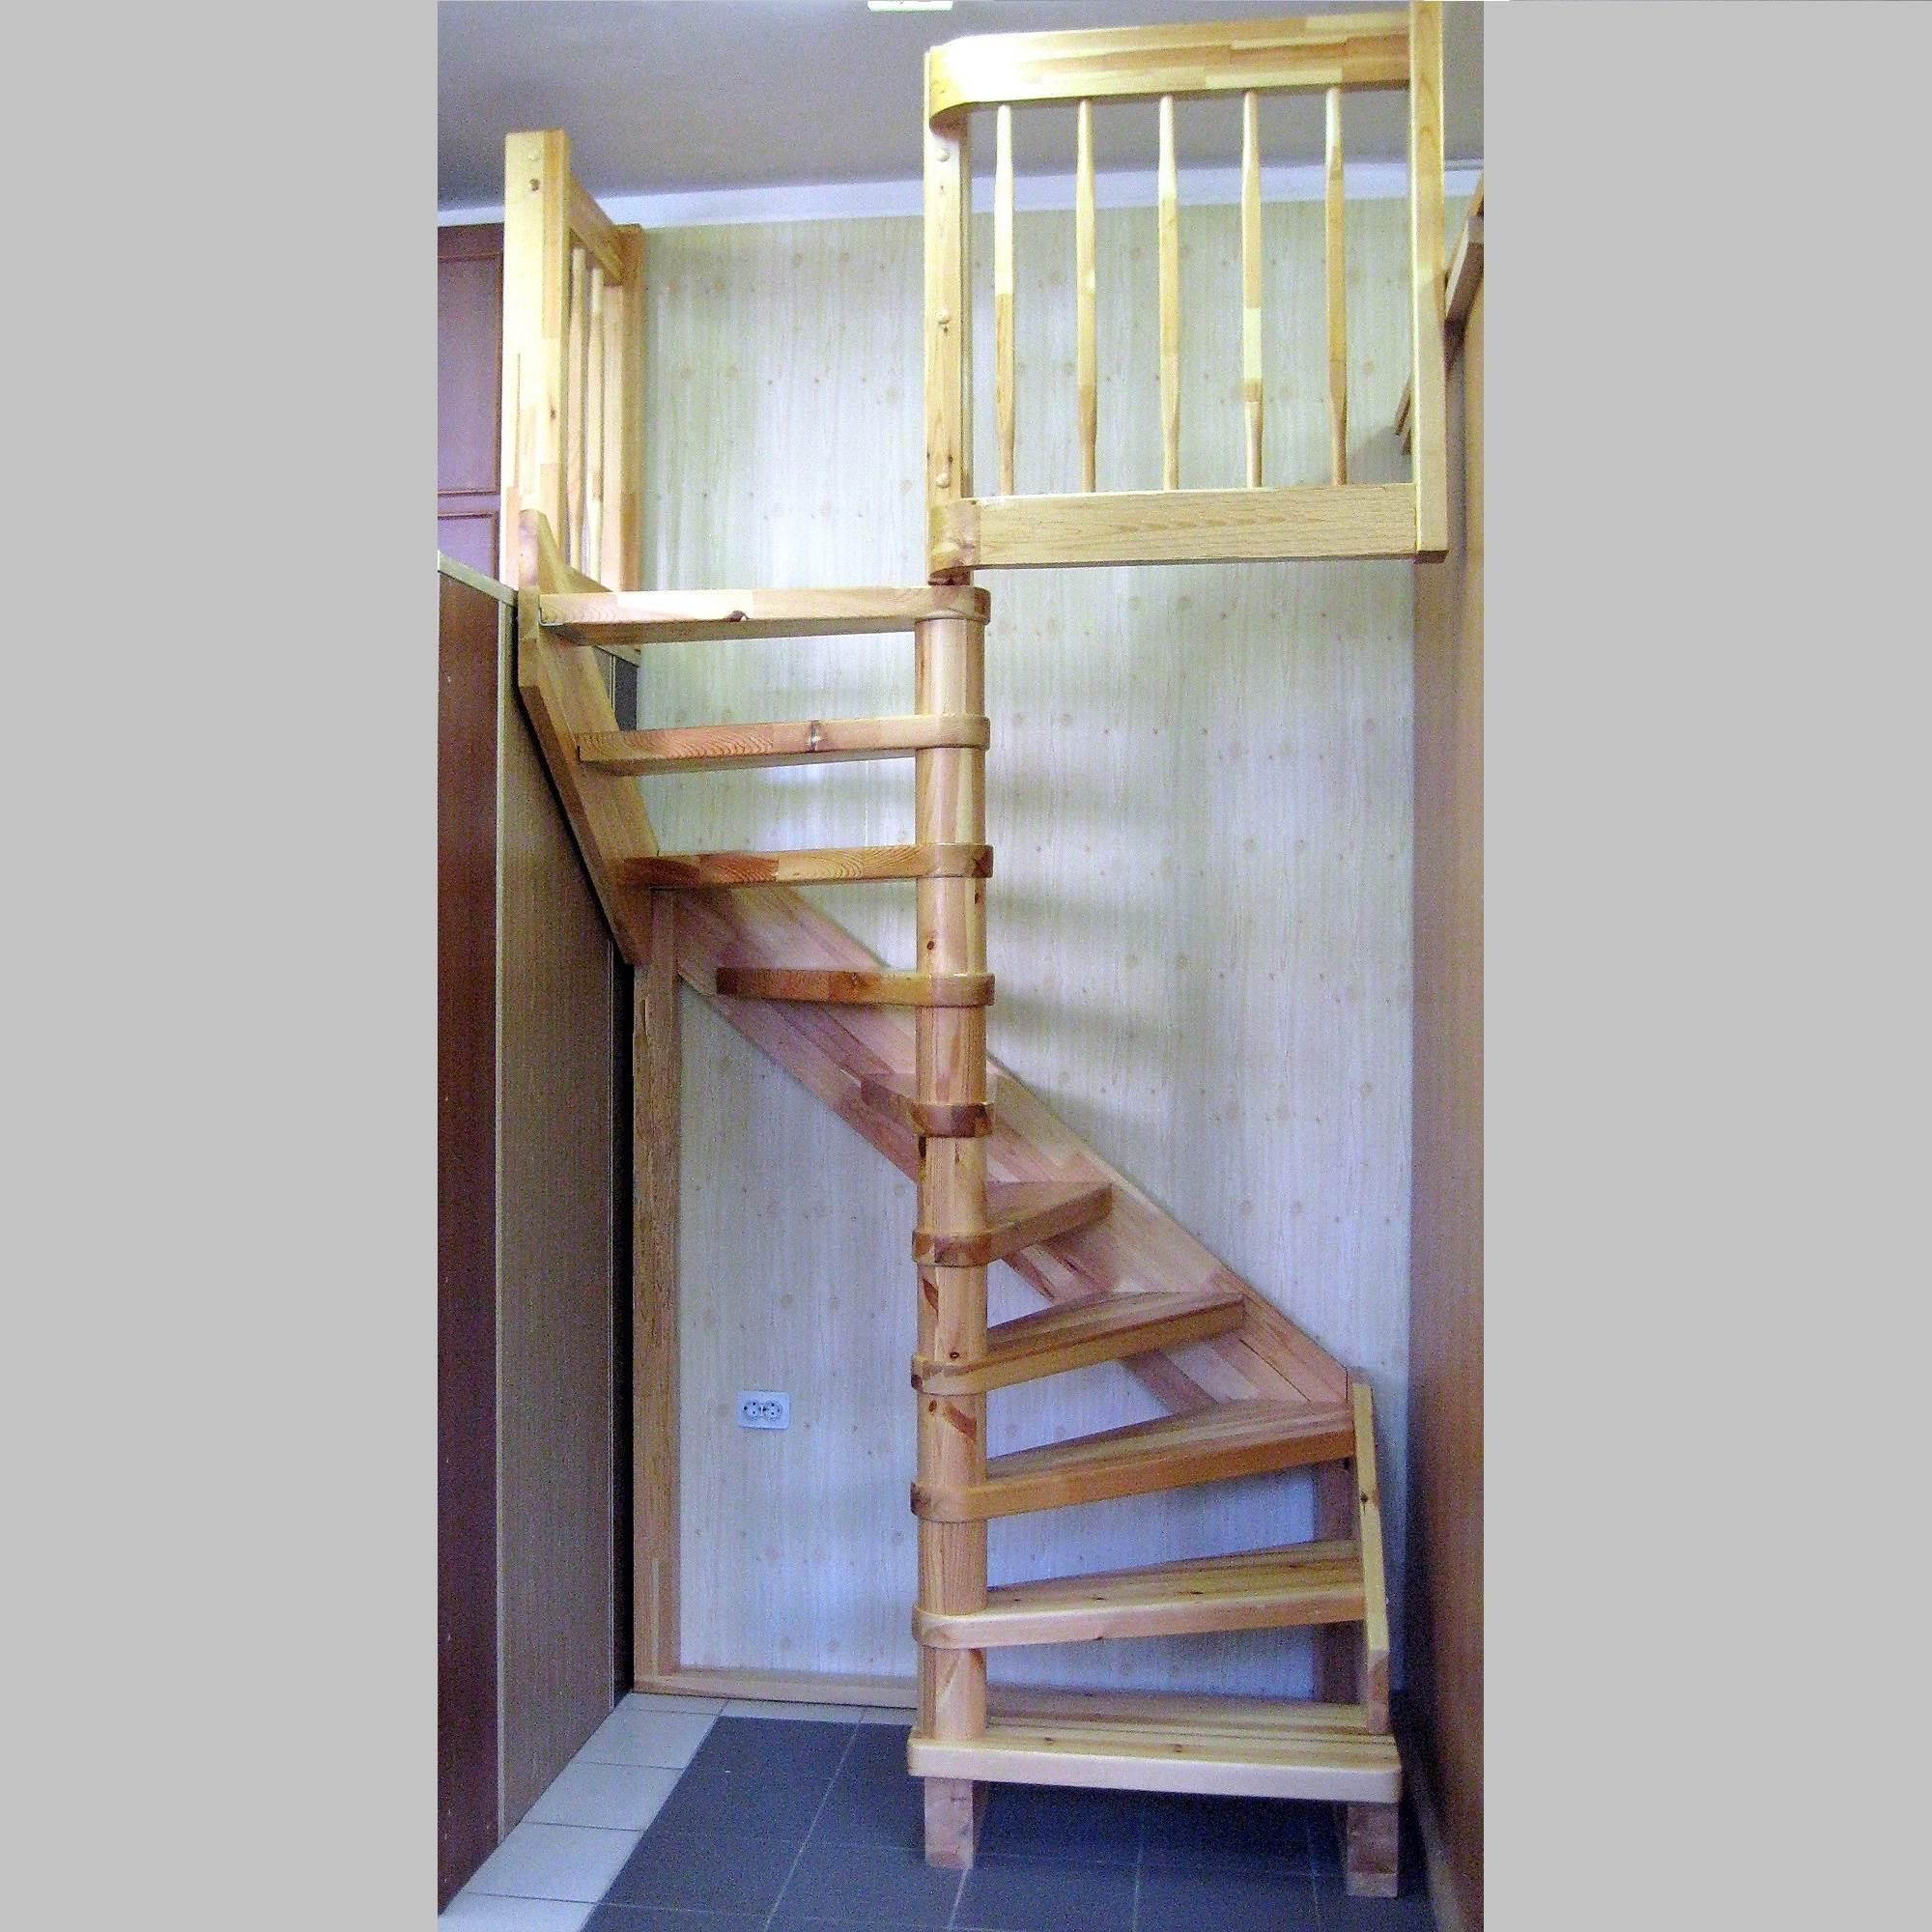 Staircase Designs For Small Spaces Rustic Natural Wooden Spiral Stairs For Small Space For